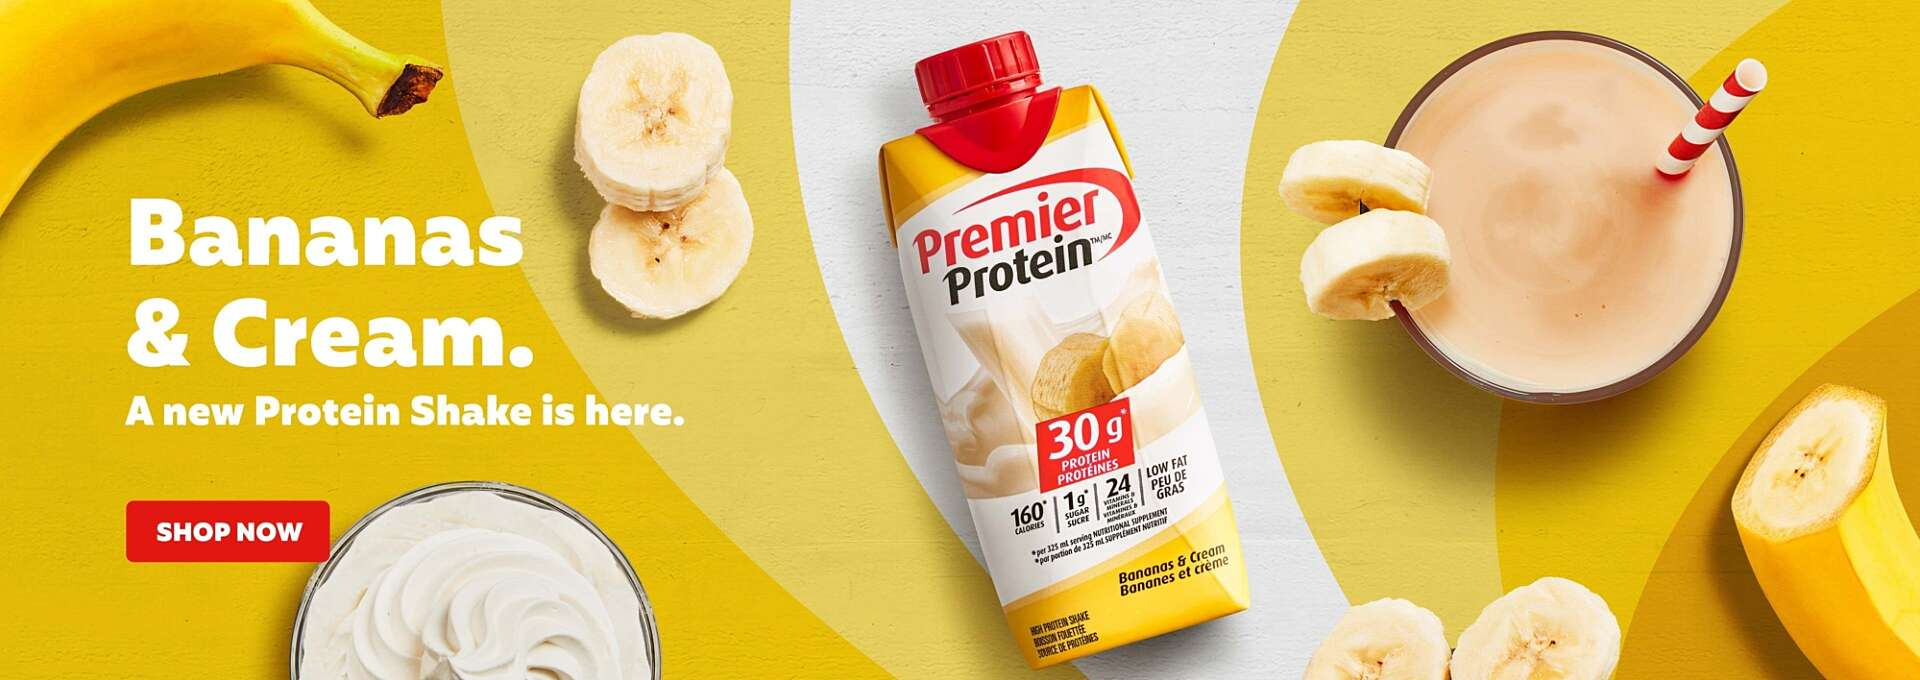 Bananas & Cream. A new protein shake is here.